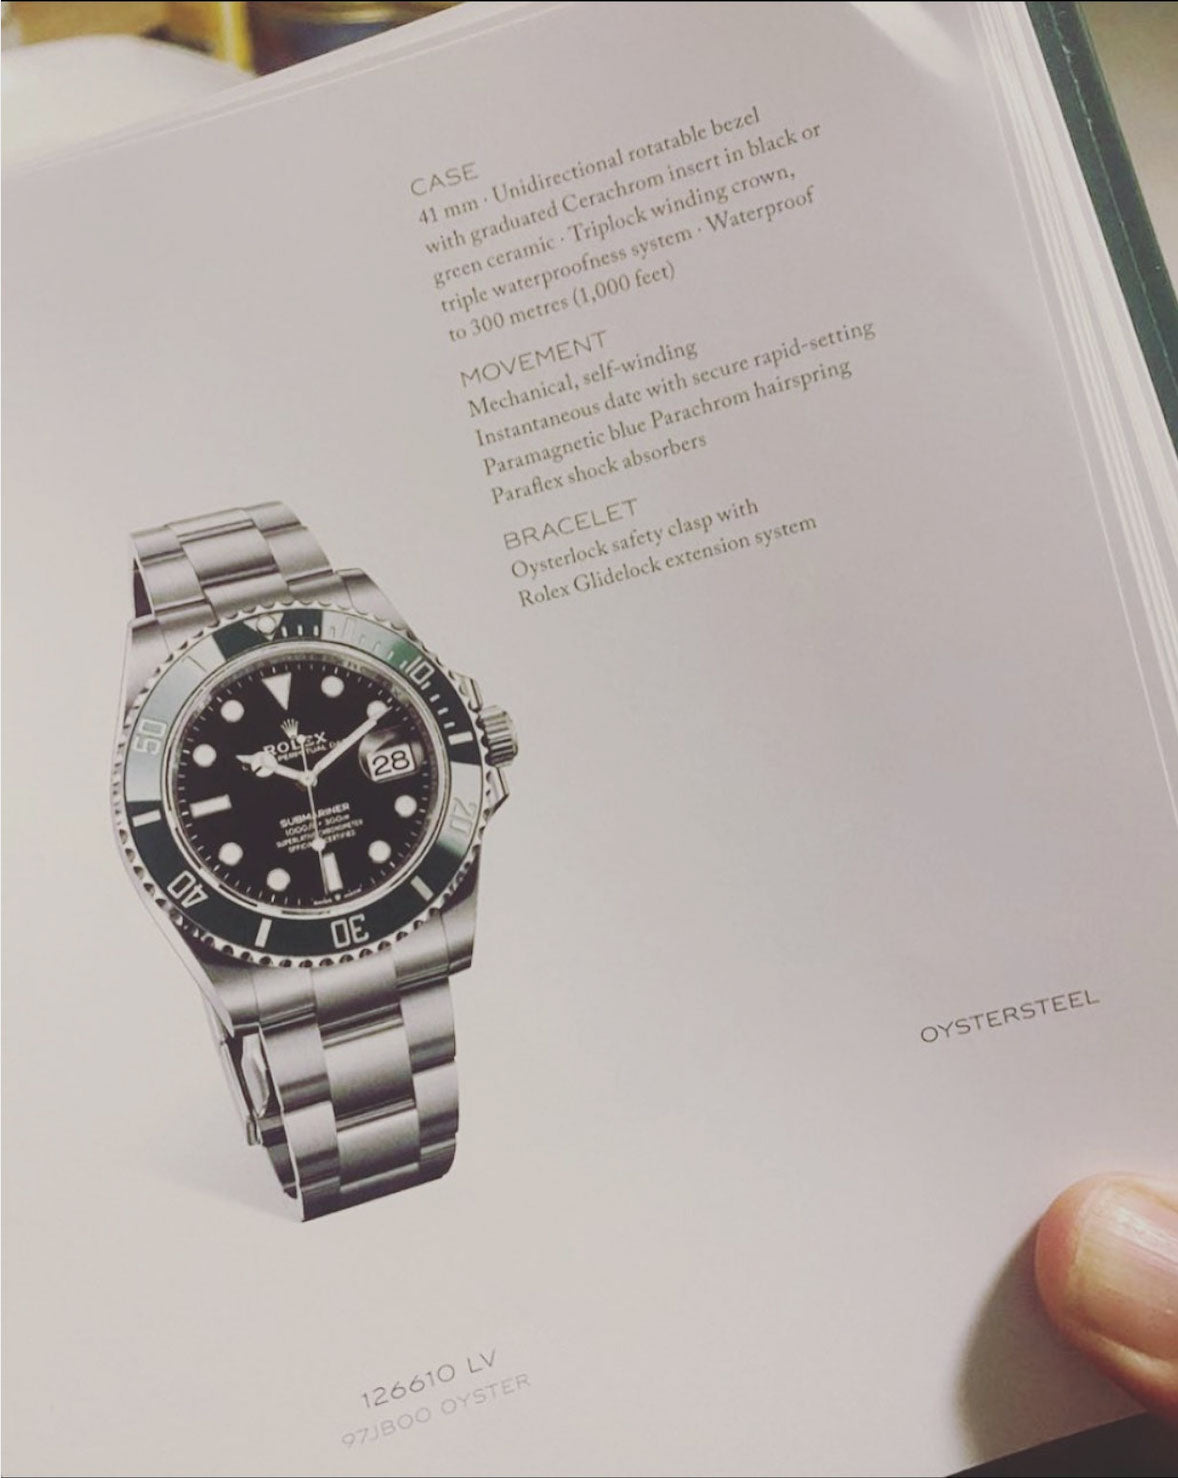 Secret picture of 2020 Rolex submariner release